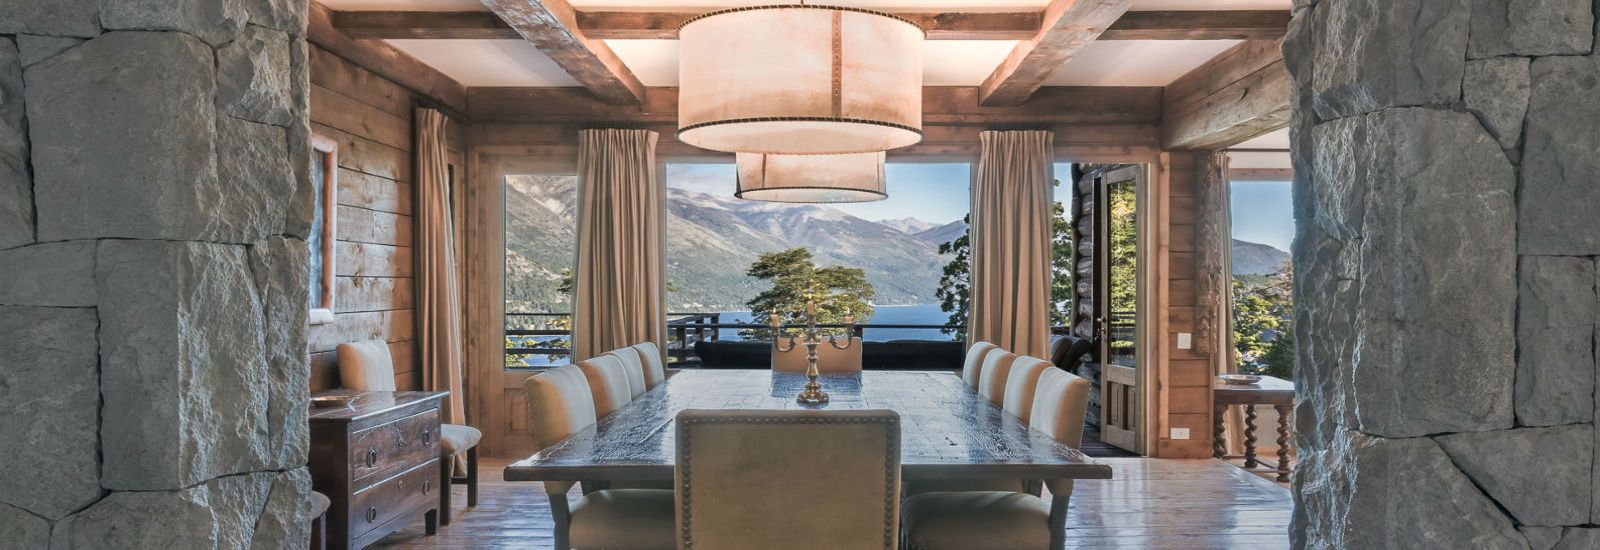 elevated escapes: luxury homes in the mountains - christie's